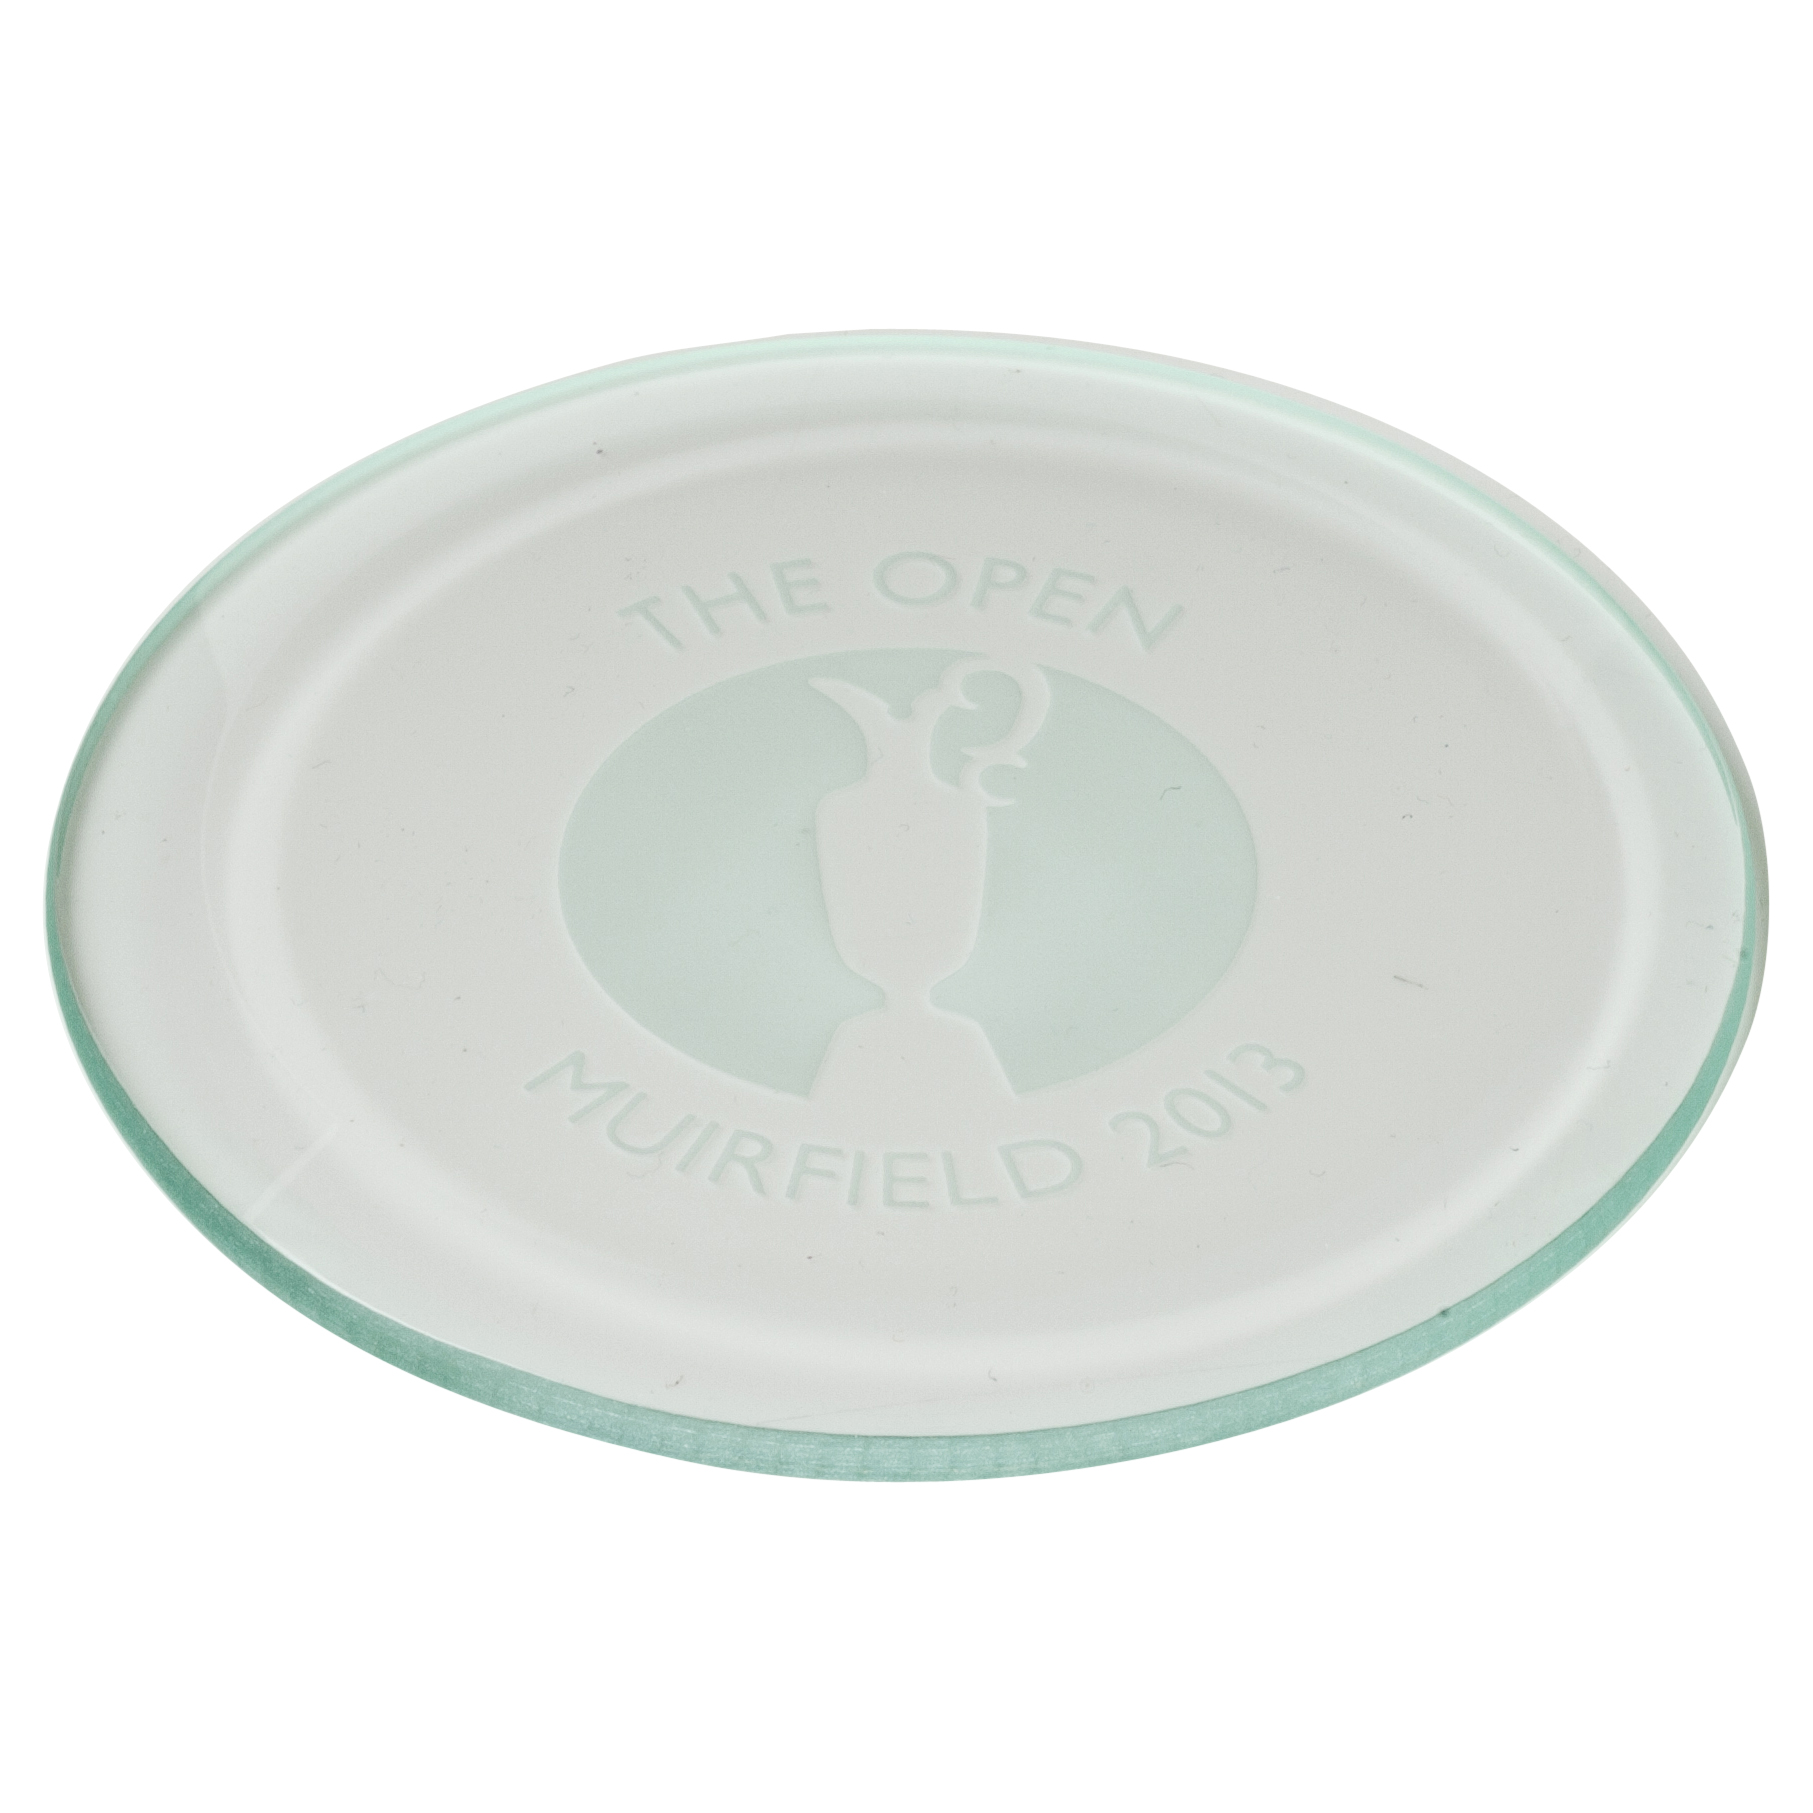 Open Golf Championship 2013 Muirfield Round Coaster